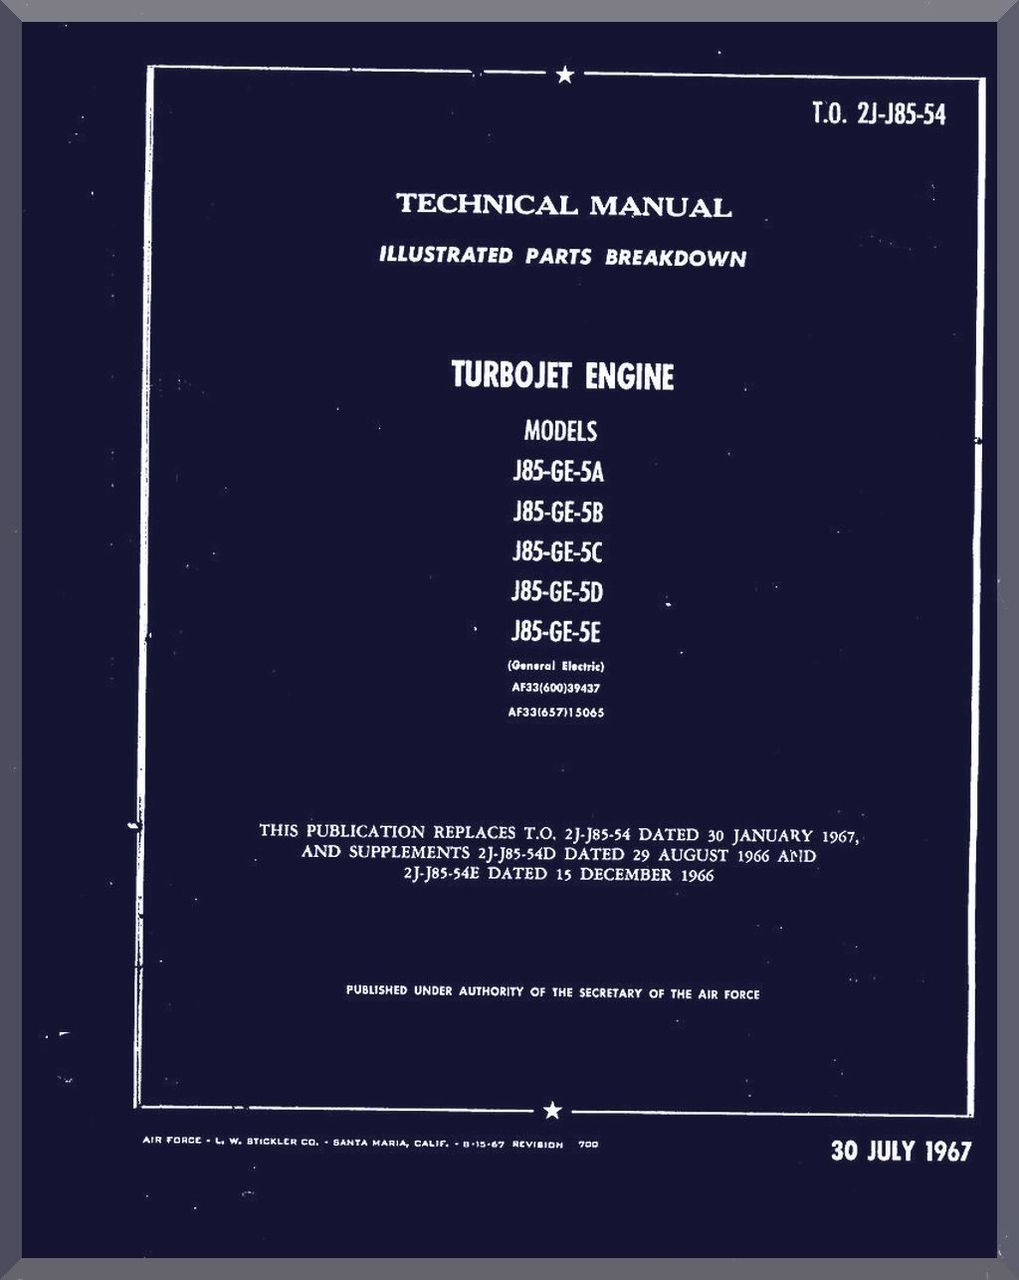 General Electric J85-GE-5A, -5B , -5C, -5D, -5E Aircraft Turbo Jet Engine  Illustrated Parts Breakdown Manual ( English Language ) -1967 - T O